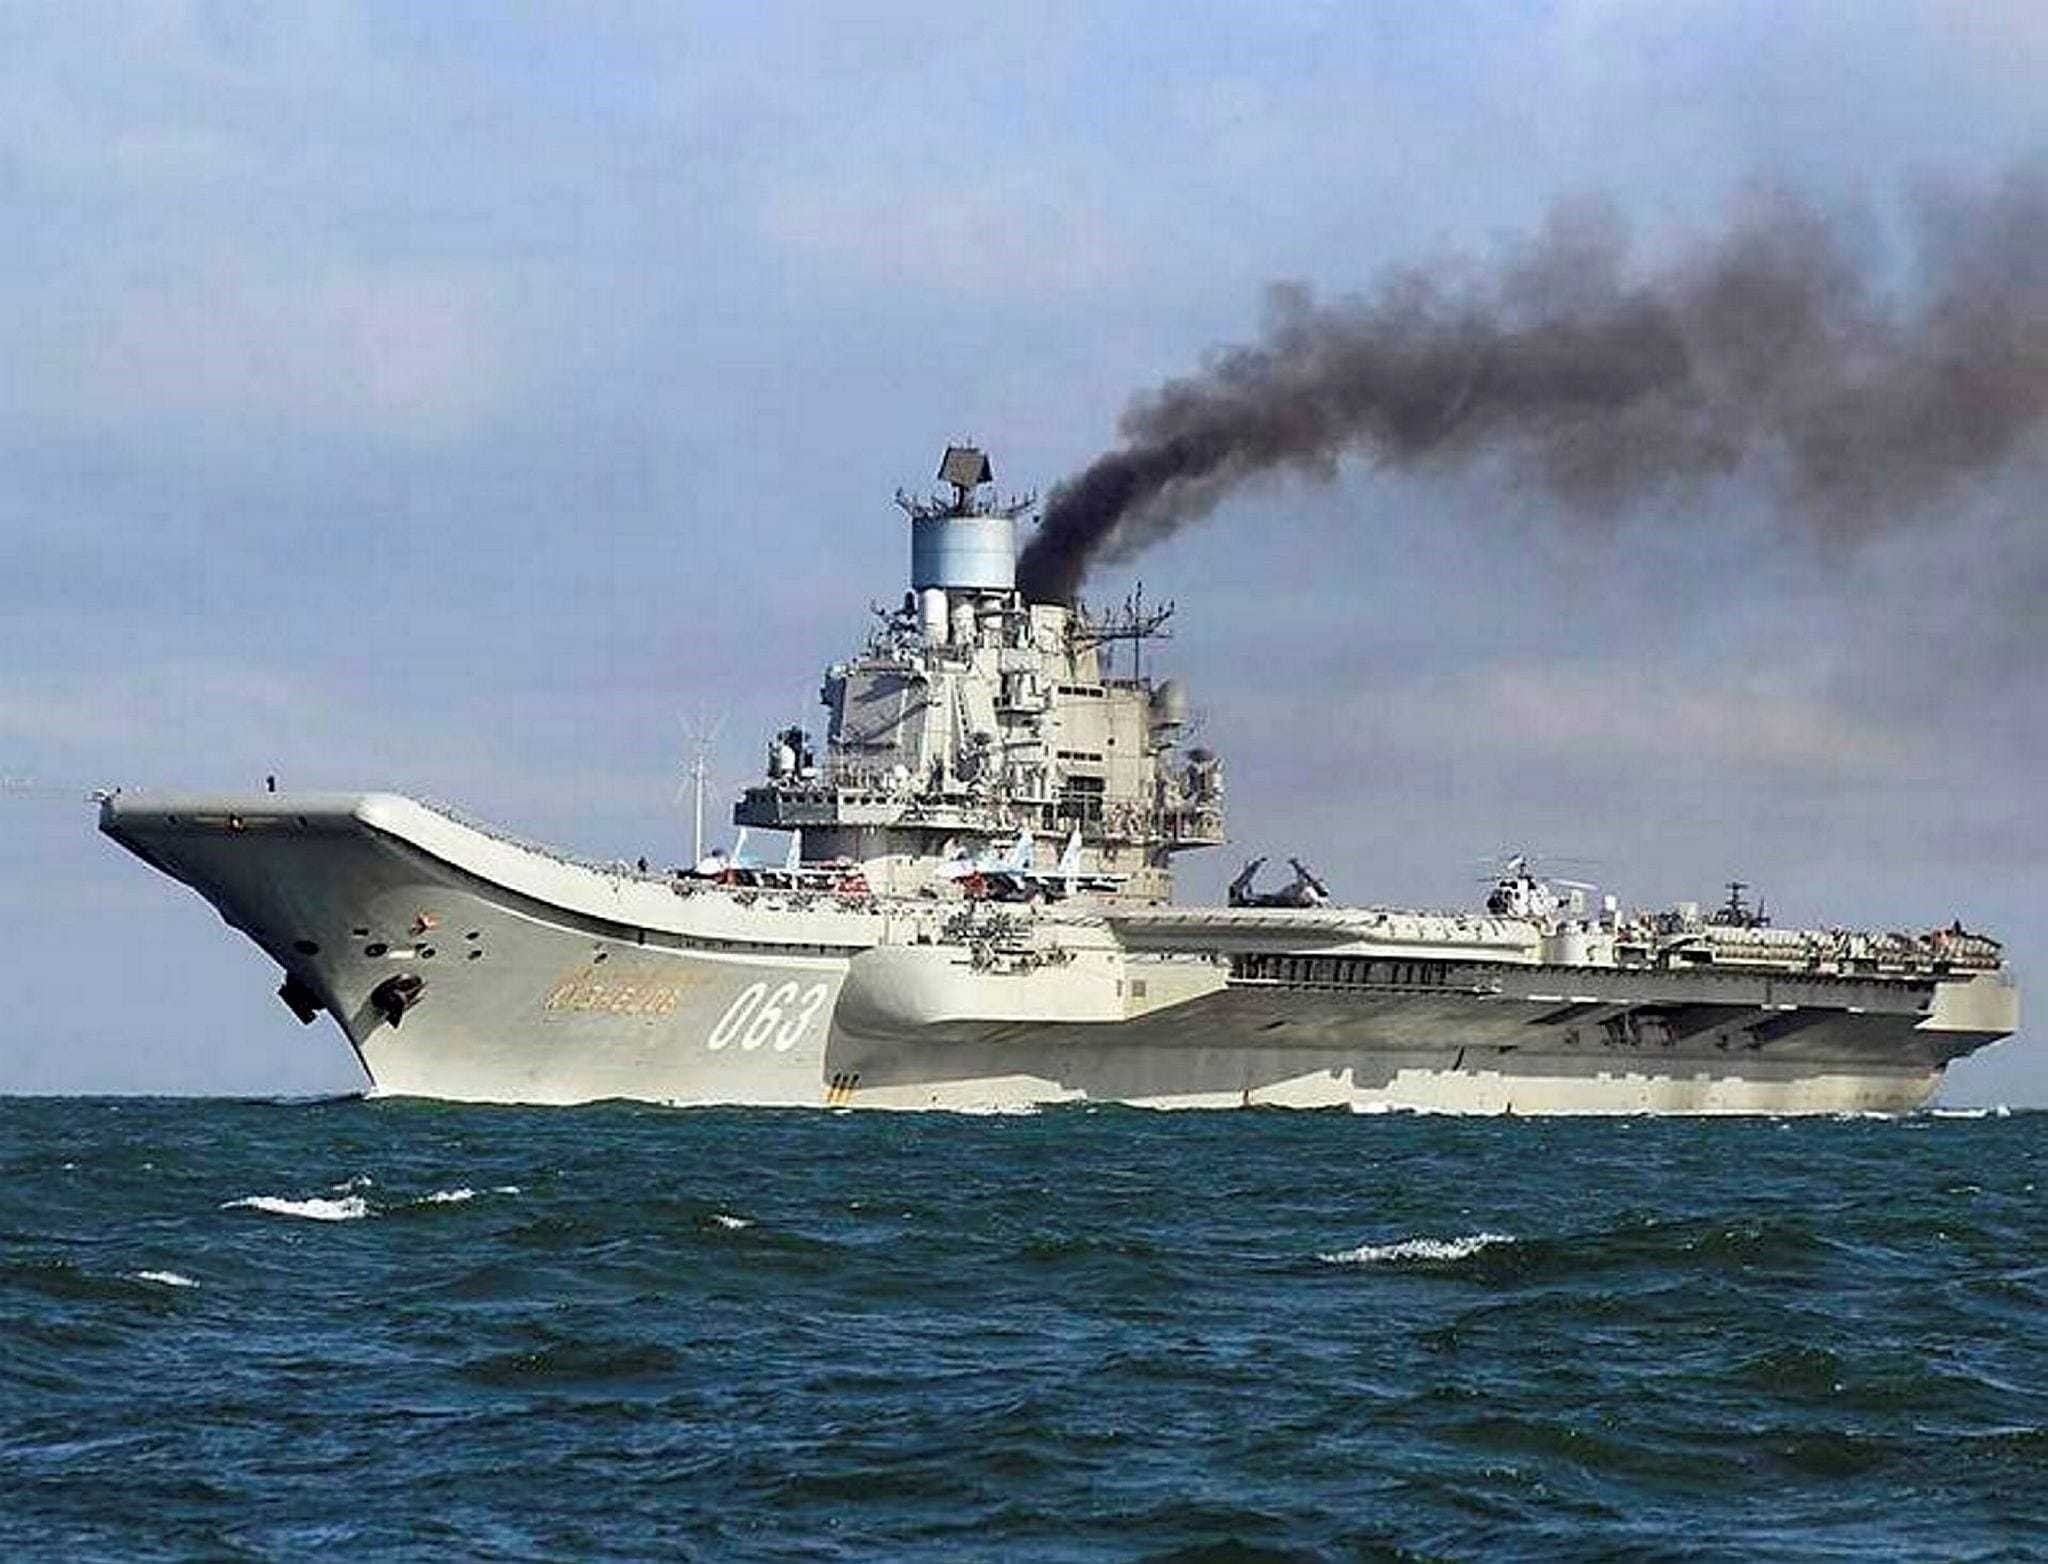 Russian aircraft carrier Admiral Kuznetsov in the English Channel on Oct. 21.